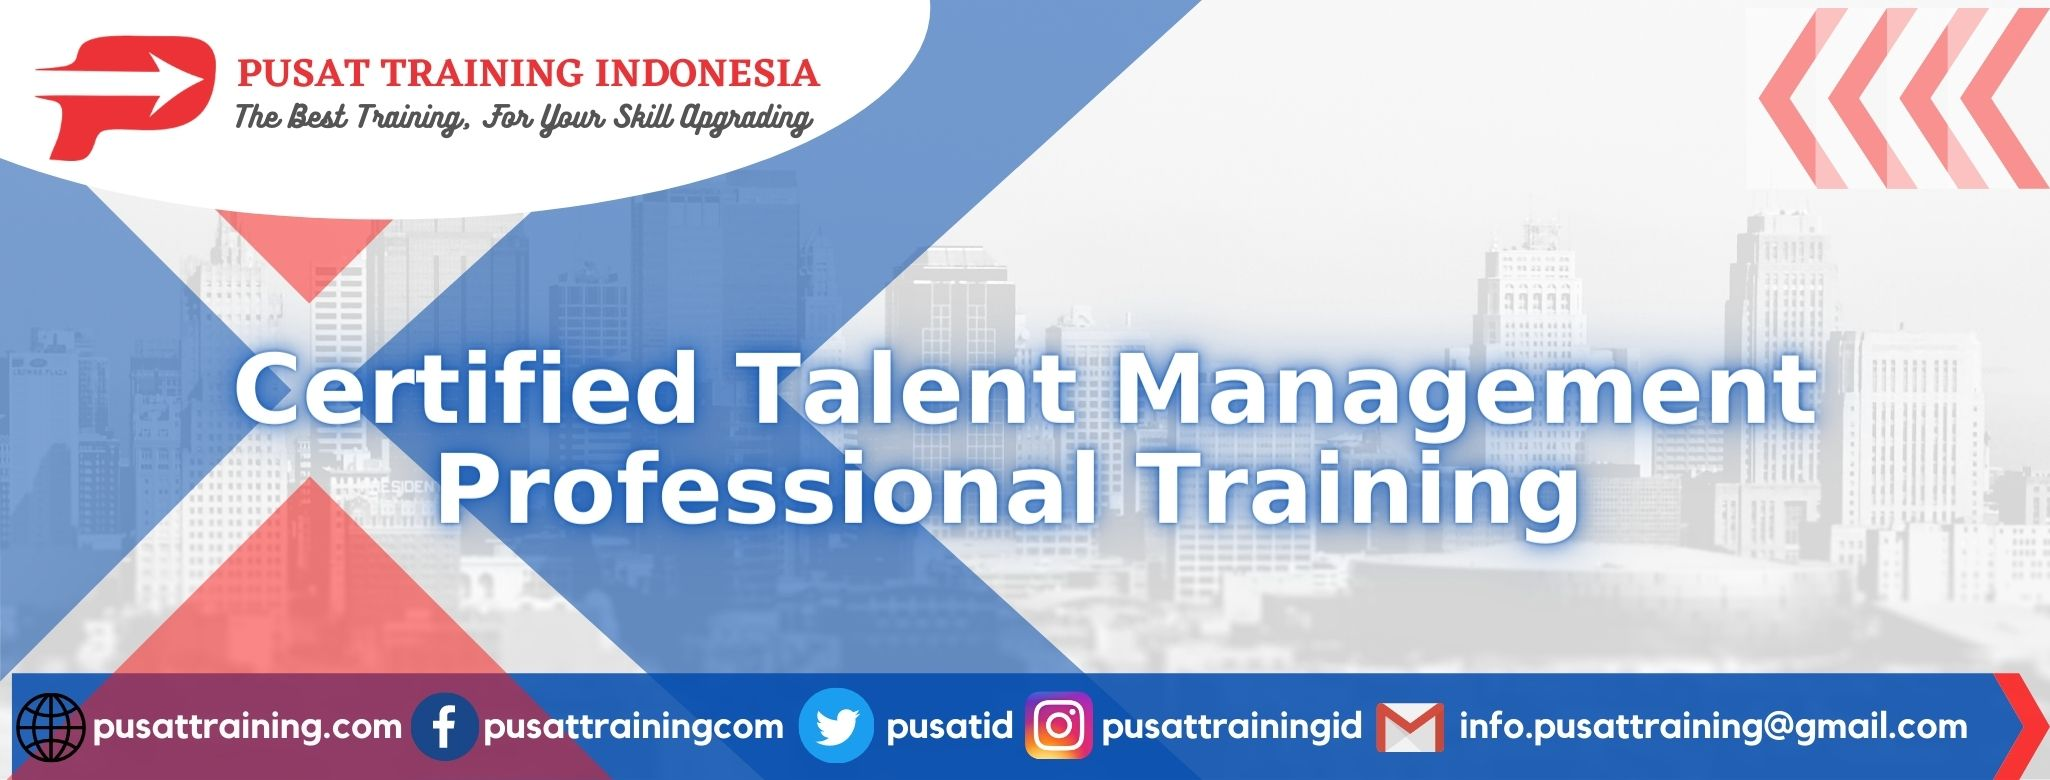 Certified-Talent-Management-Professional-Training